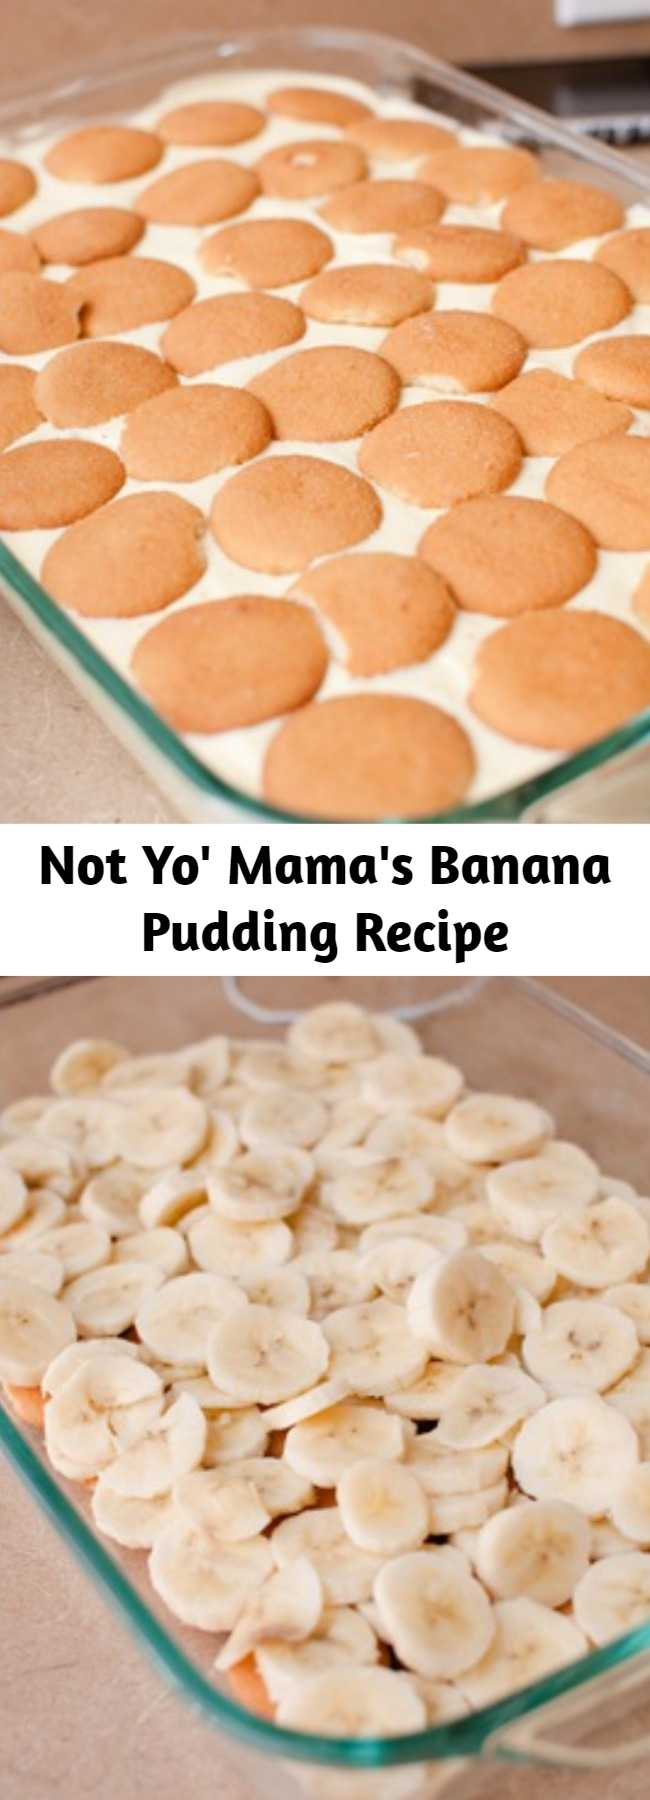 Not Yo' Mama's Banana Pudding Recipe - I found this recipe about 5 years ago and I've been makin' it ever since.  This is the ONLY way I can eat it now!!!  Spoiled!!!  If you haven't tried this version yet, you MUST!!!!  This is definitely the BEST!!!  Not at all like momma used to make it!!!